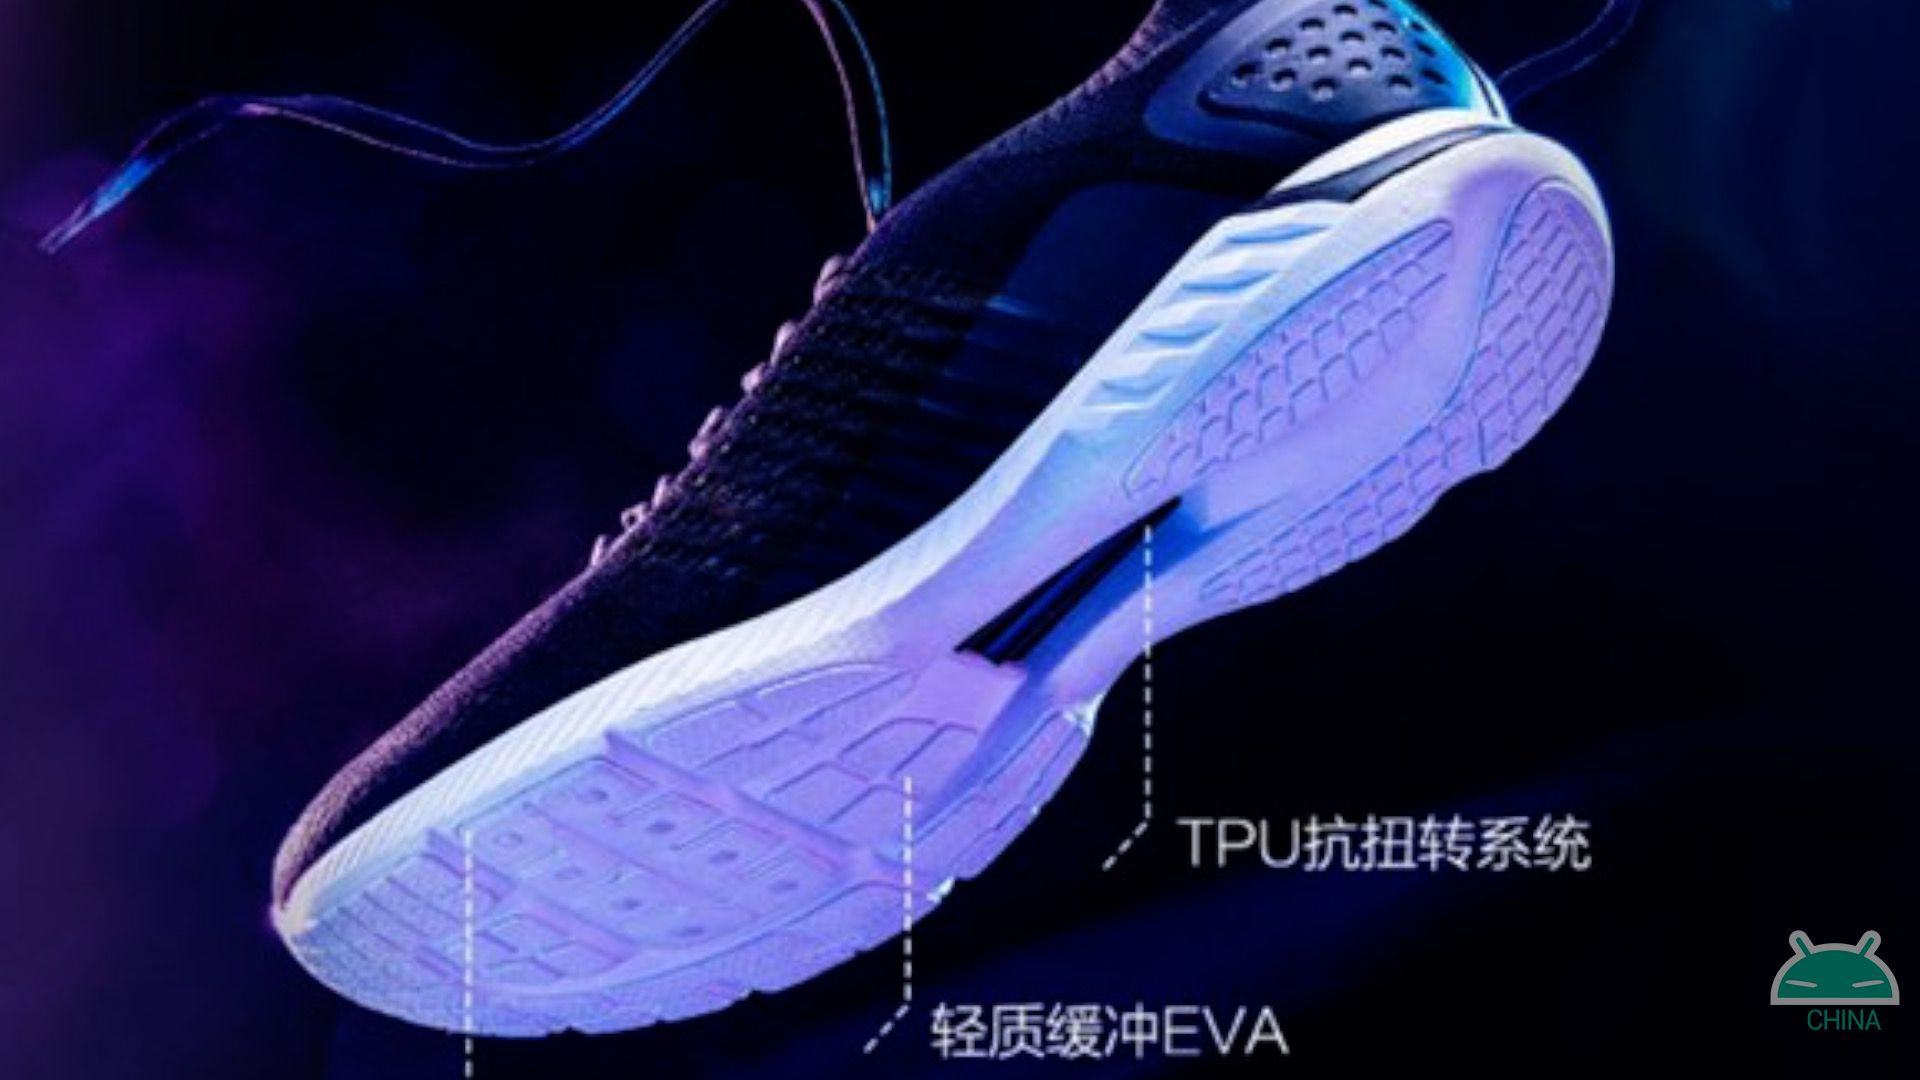 Xiaomi 90 Point Ultra Light Running Shoes